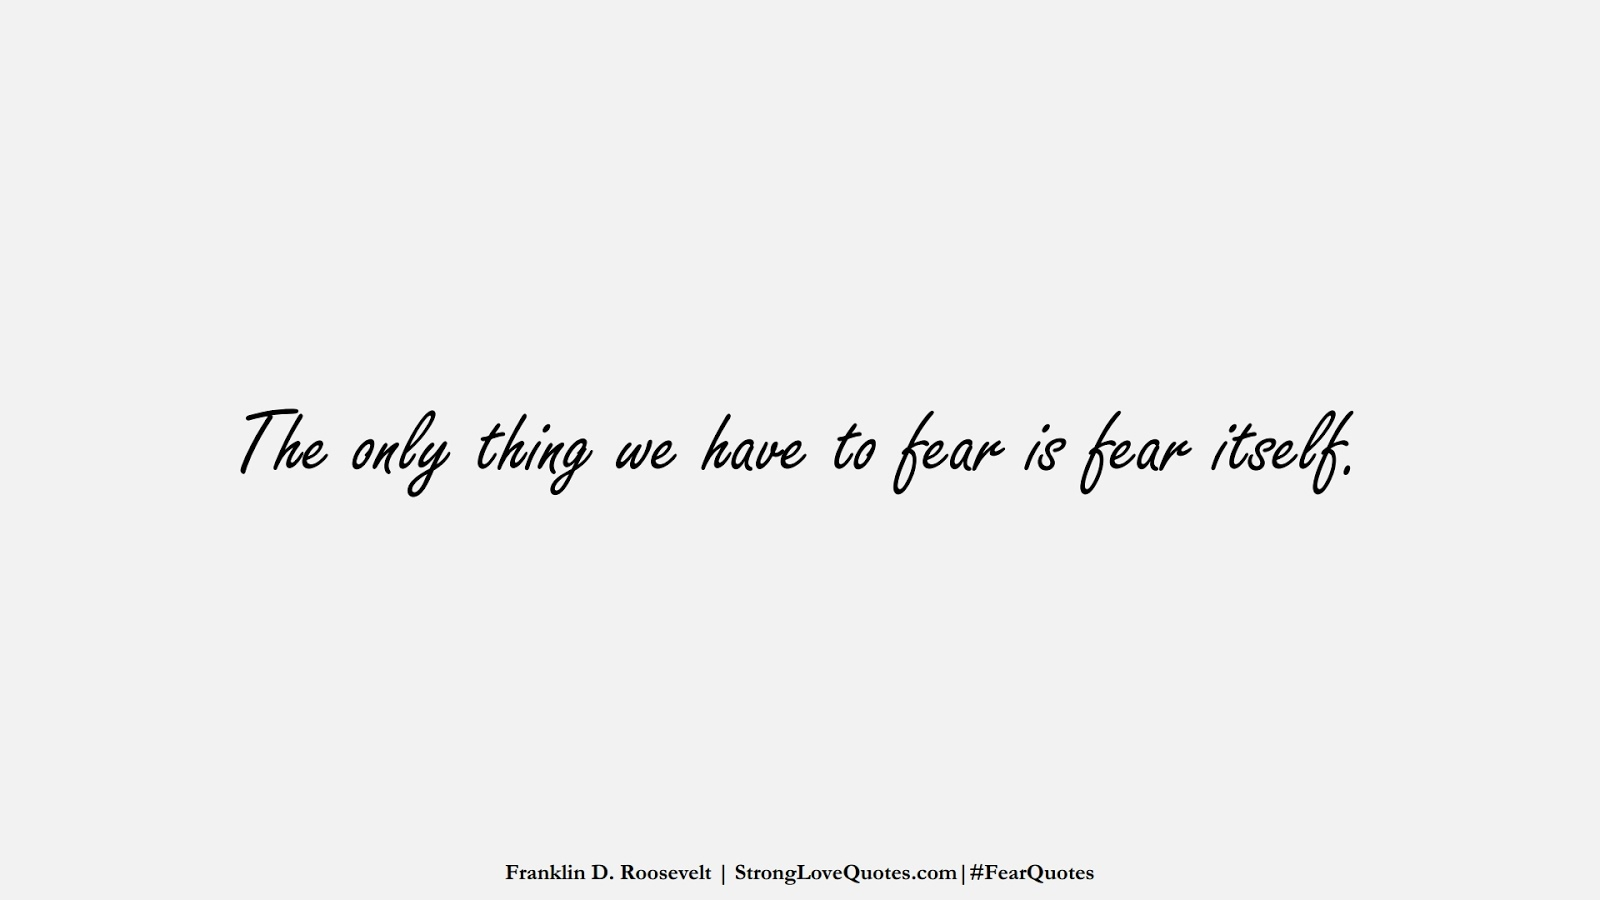 The only thing we have to fear is fear itself. (Franklin D. Roosevelt);  #FearQuotes